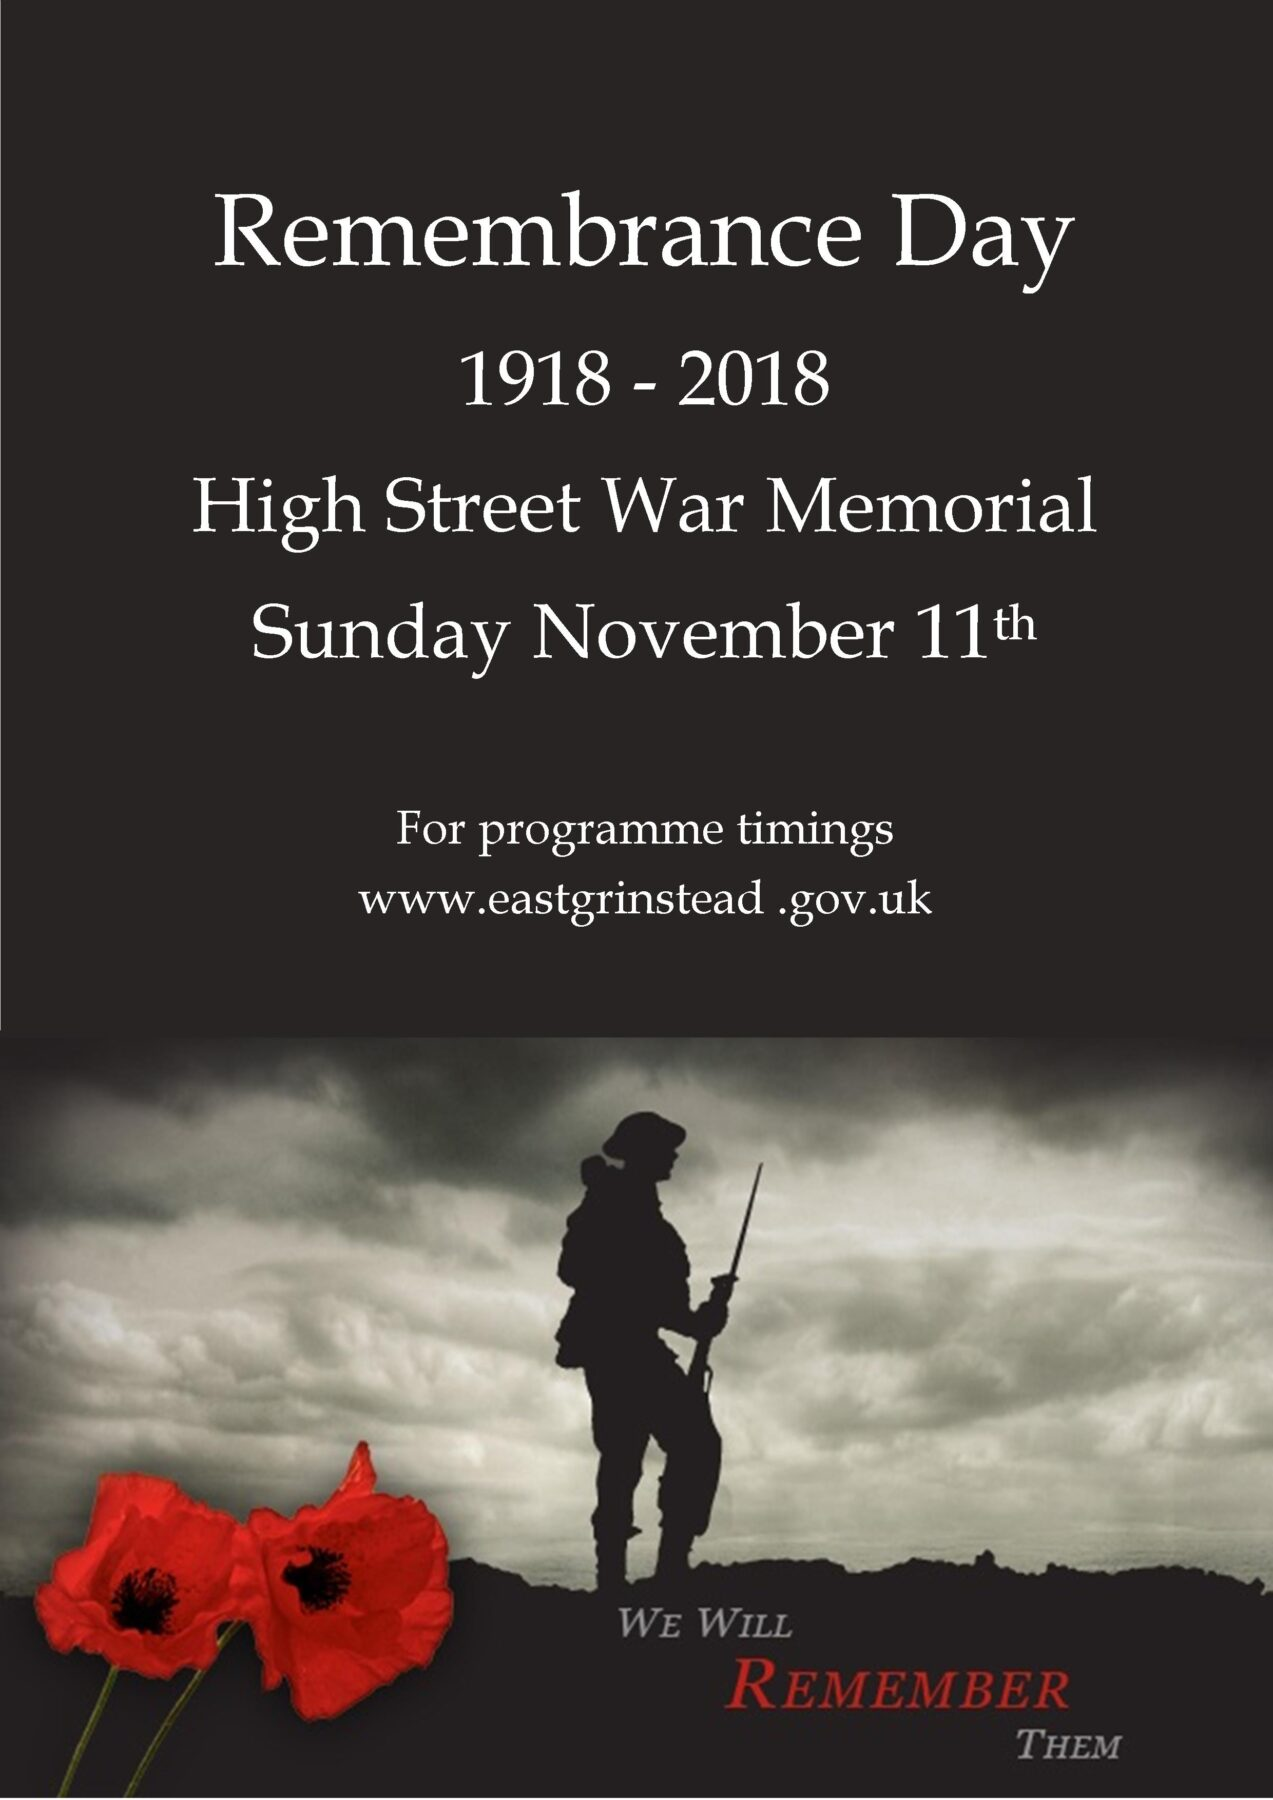 Remembrance Day | Visit East Grinstead